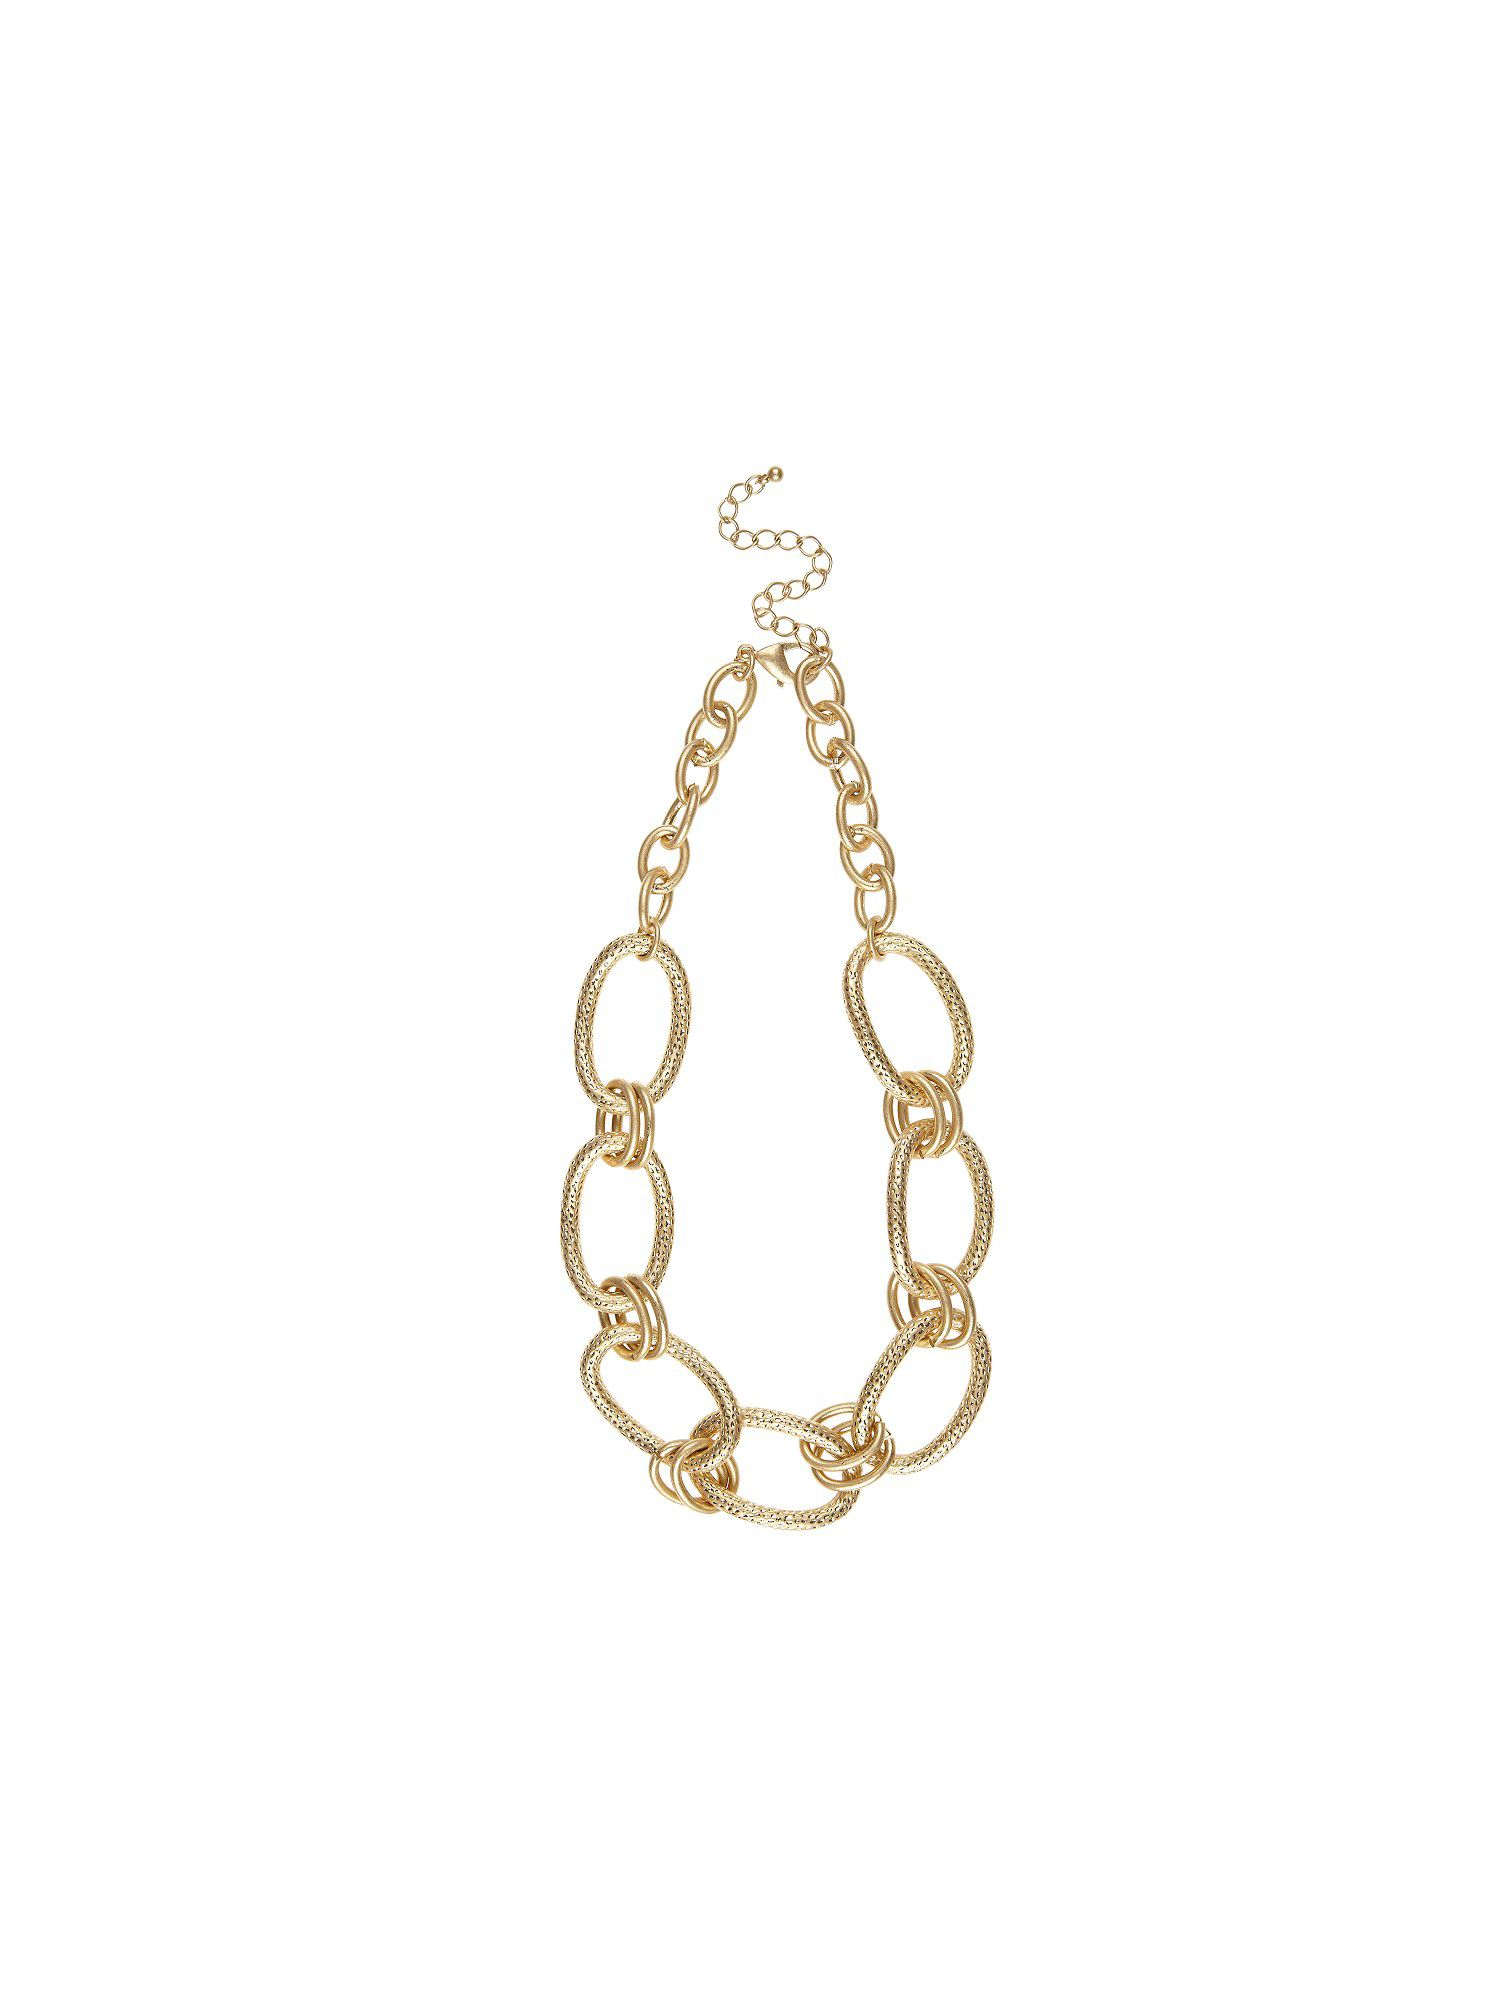 Oval textured chain necklace